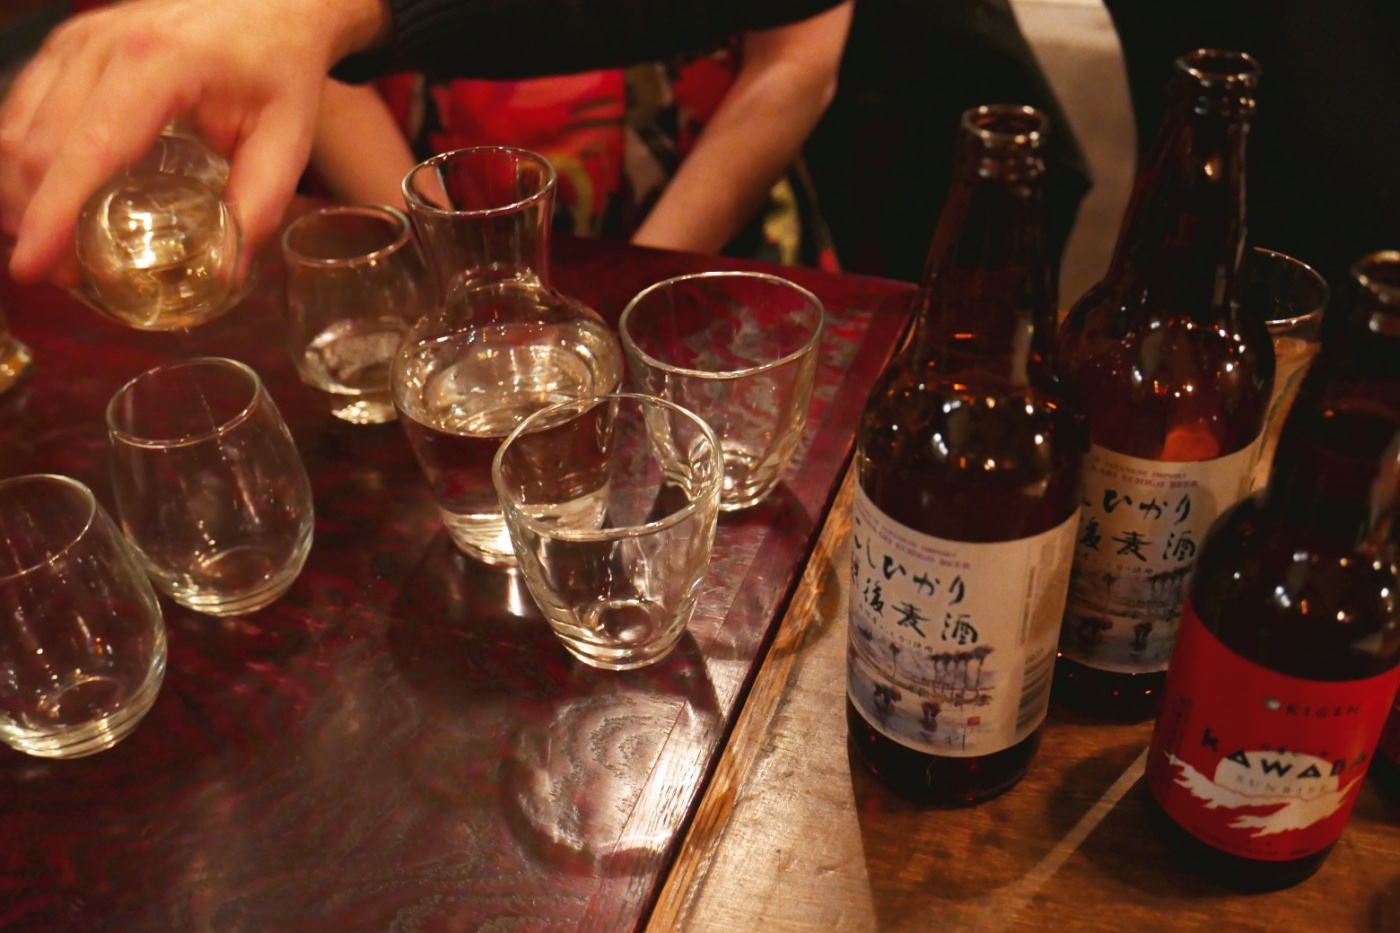 Sake is made from only rice, more like a wine, is distilled then fermented.